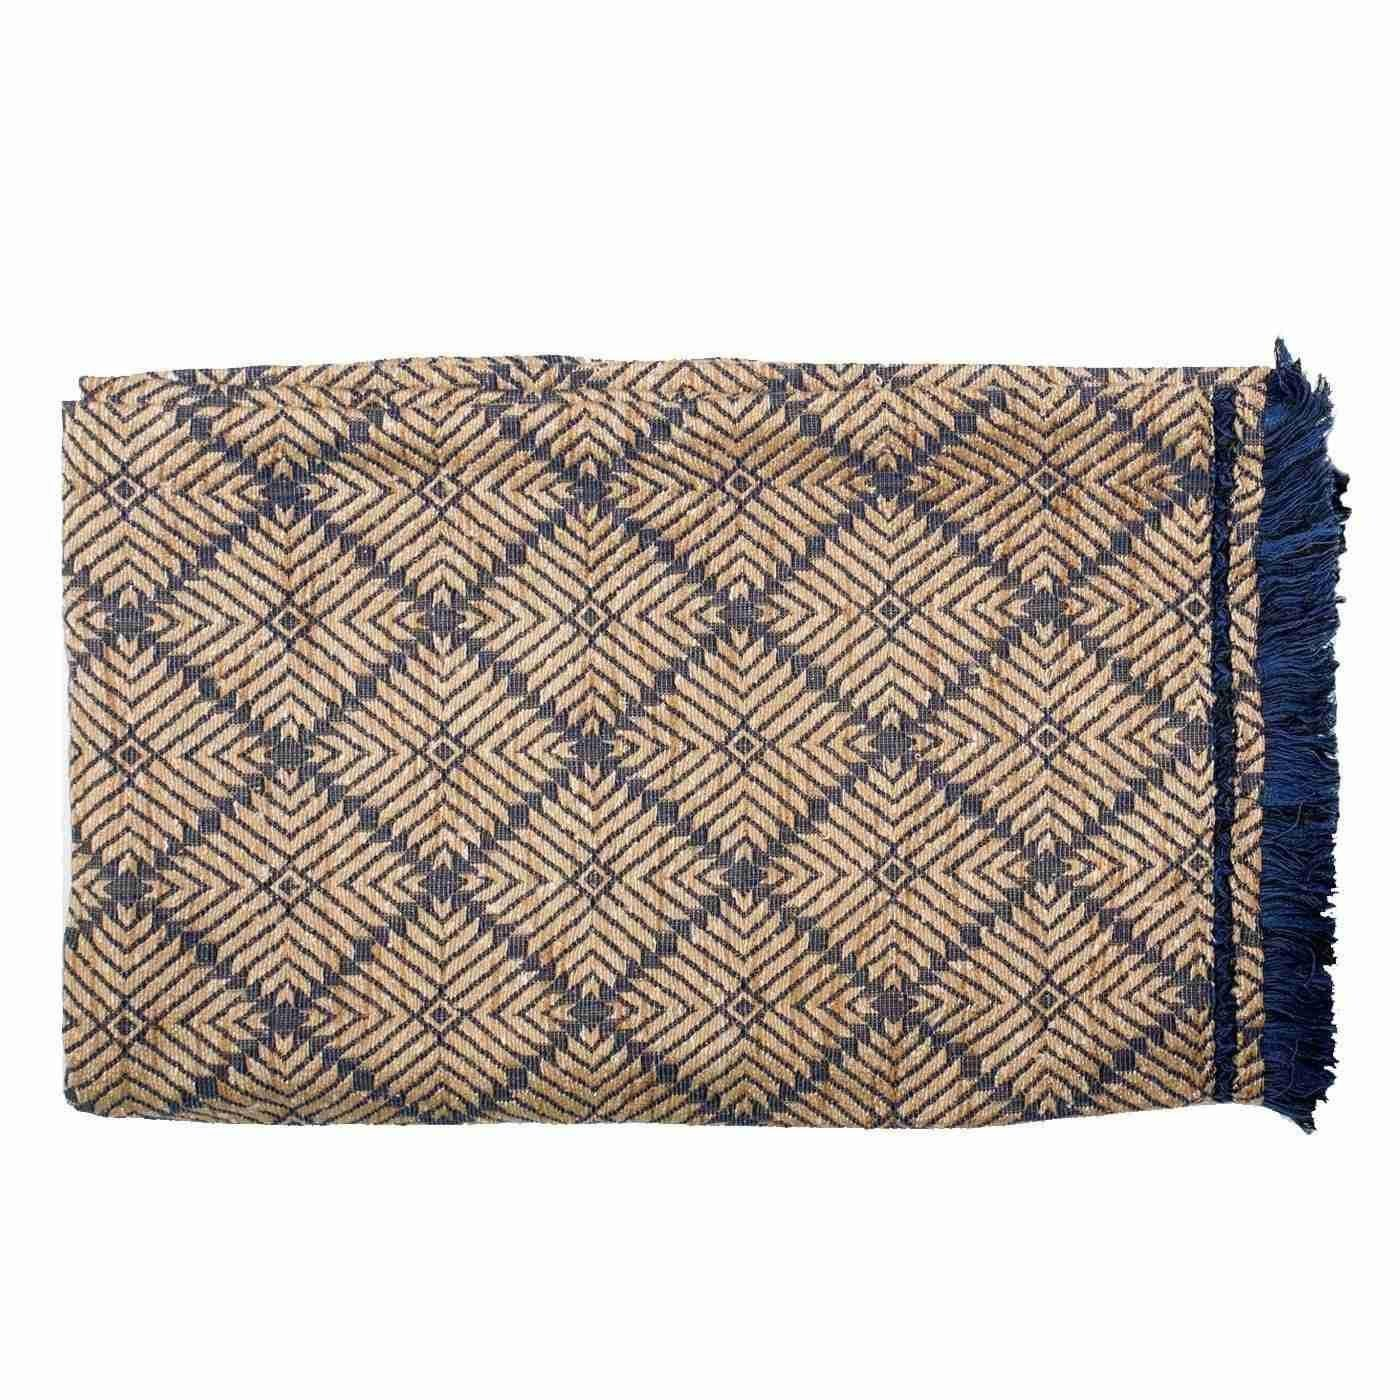 Bandhini Homewear Design Throw Navy  Beige / Naval Sea / 46 x 72 Weave Phulkari Navy Throw 117 x 183 cm